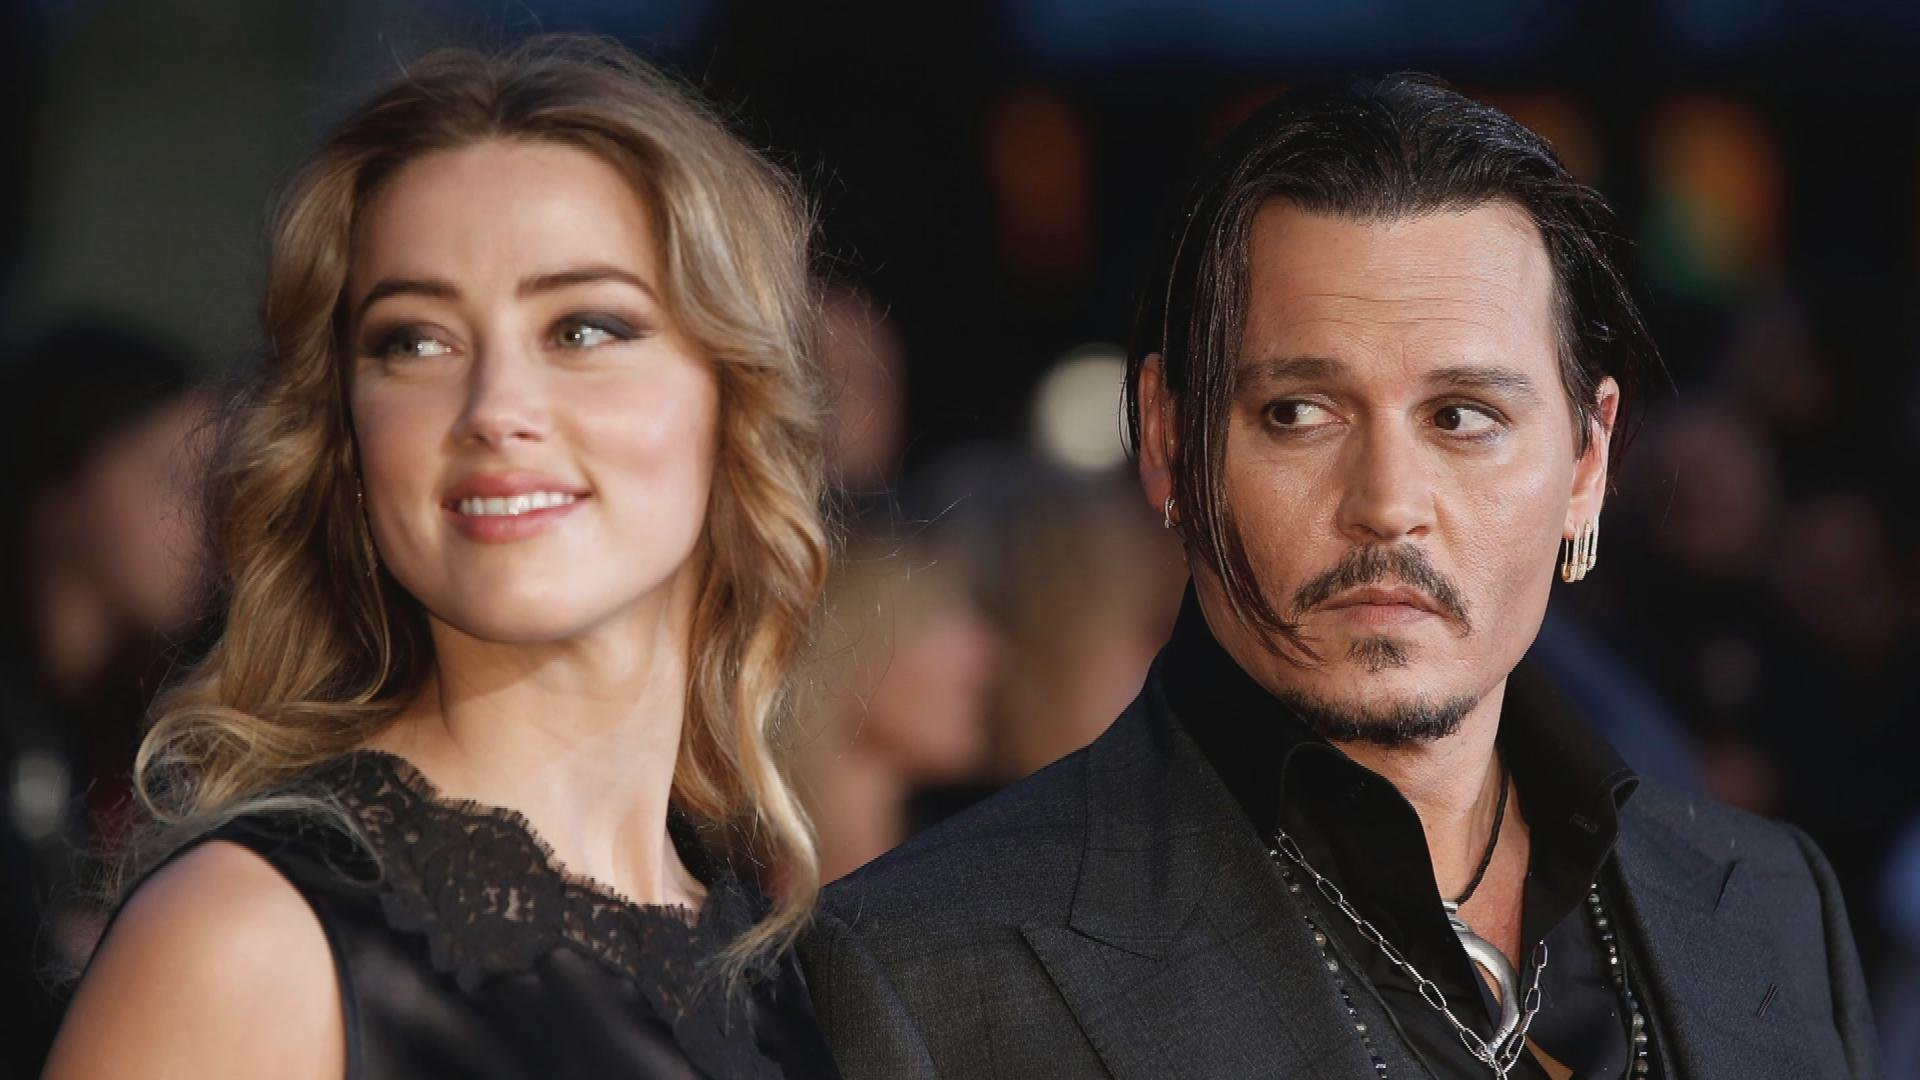 entertainment tonight.jpg?resize=412,232 - Johnny Depp Accused His Ex-Wife Amber Heard Of Putting Out A Cigarette On His Face